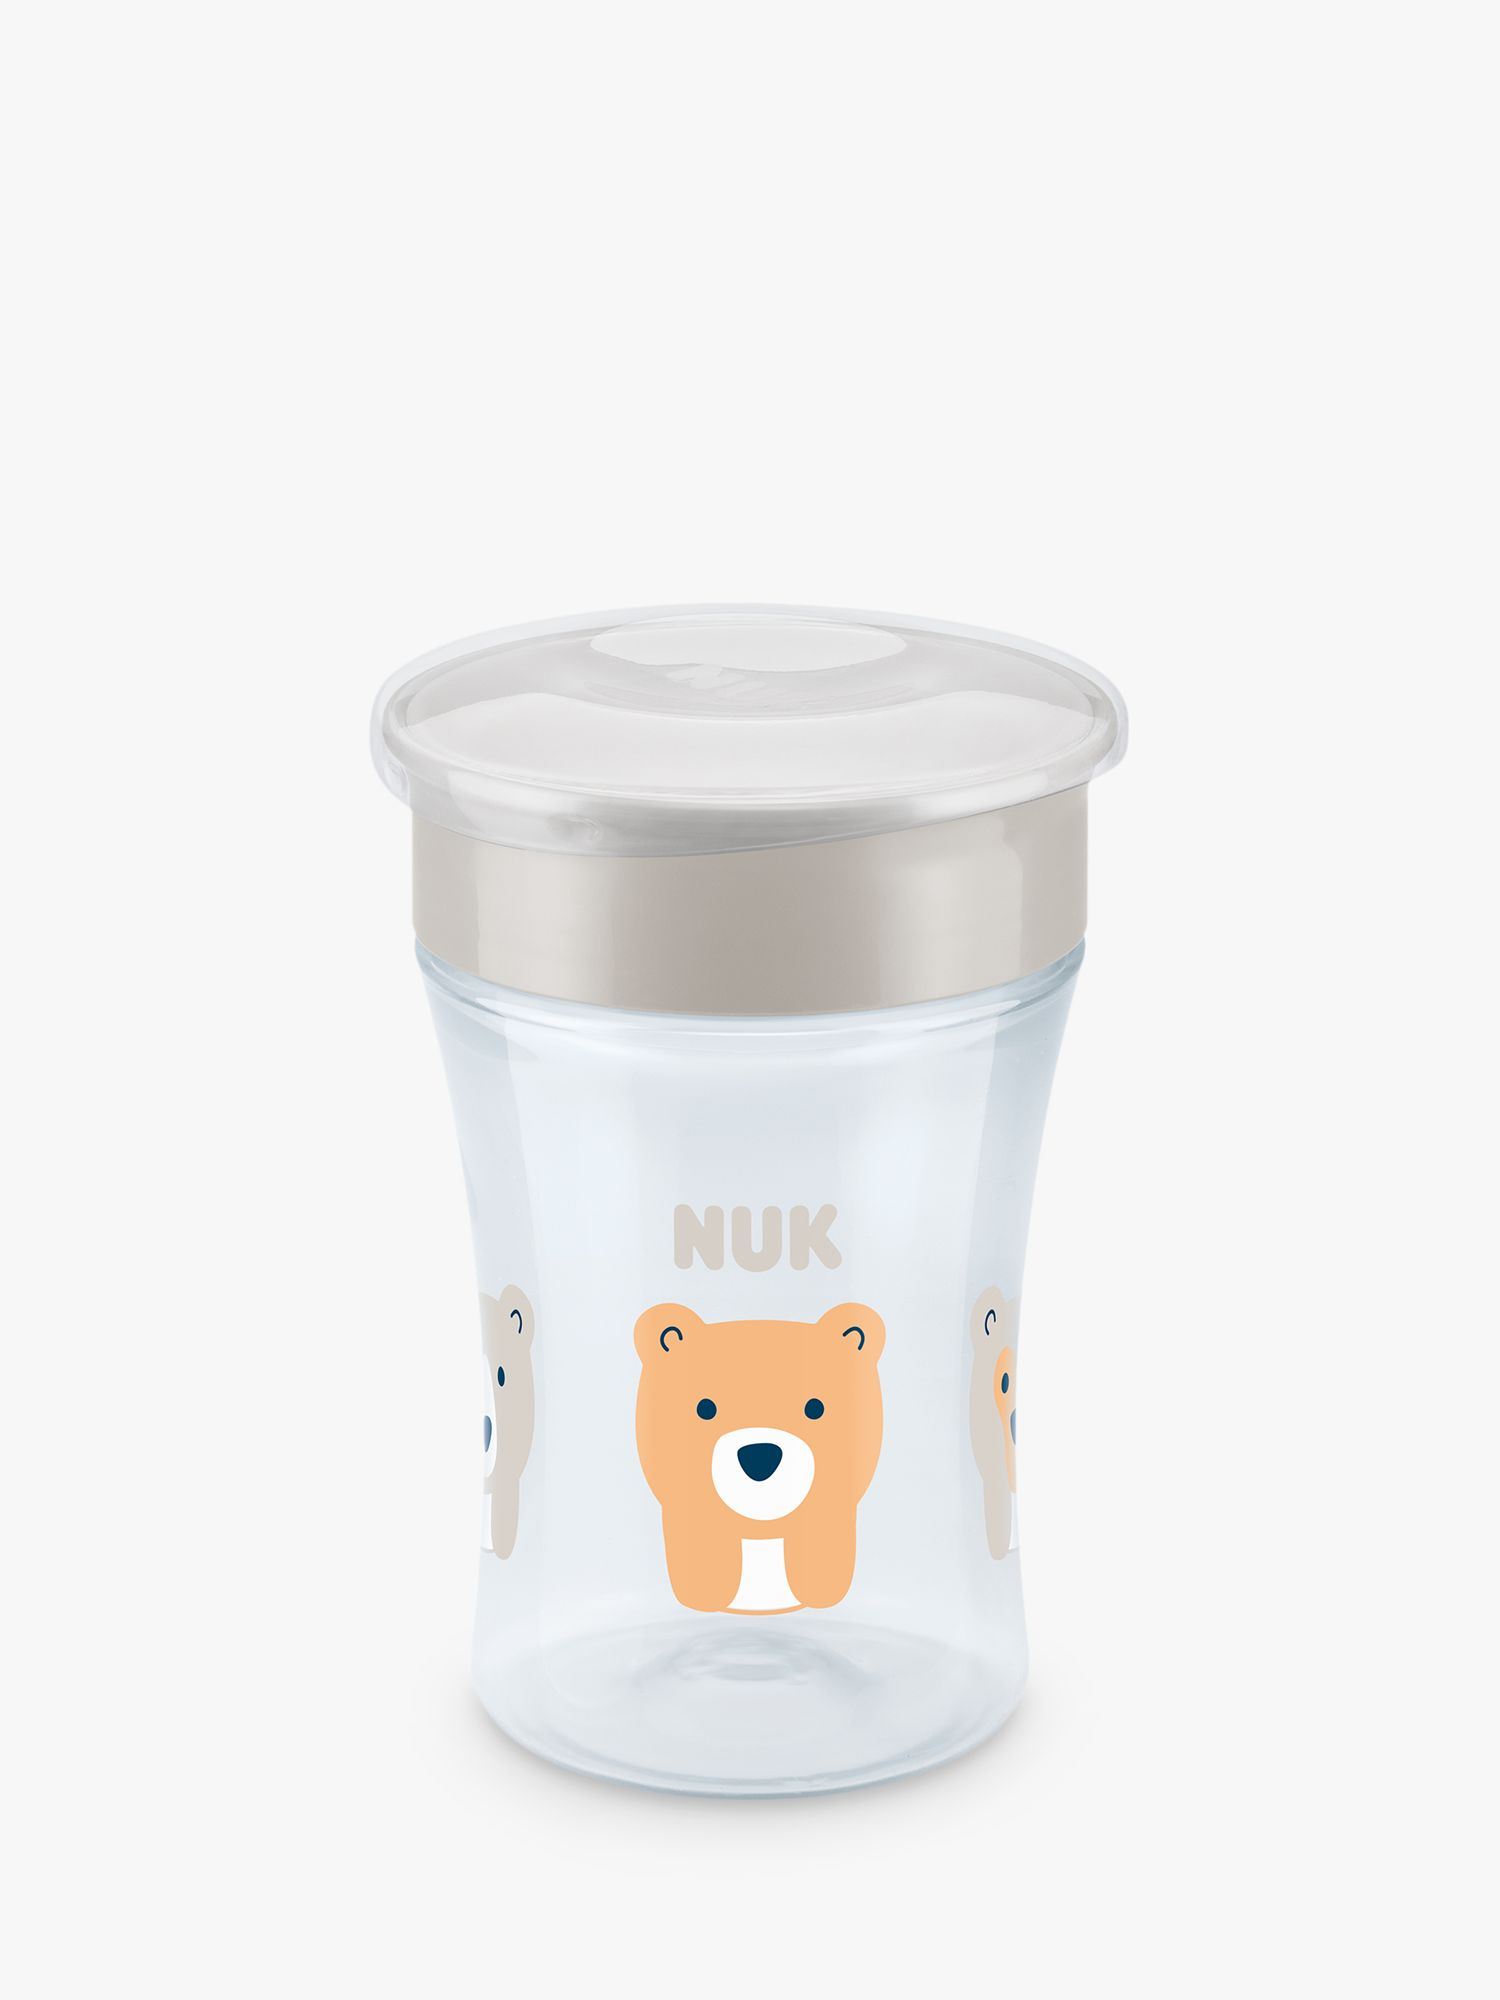 NUK NUK Evolution Magic Cup, White